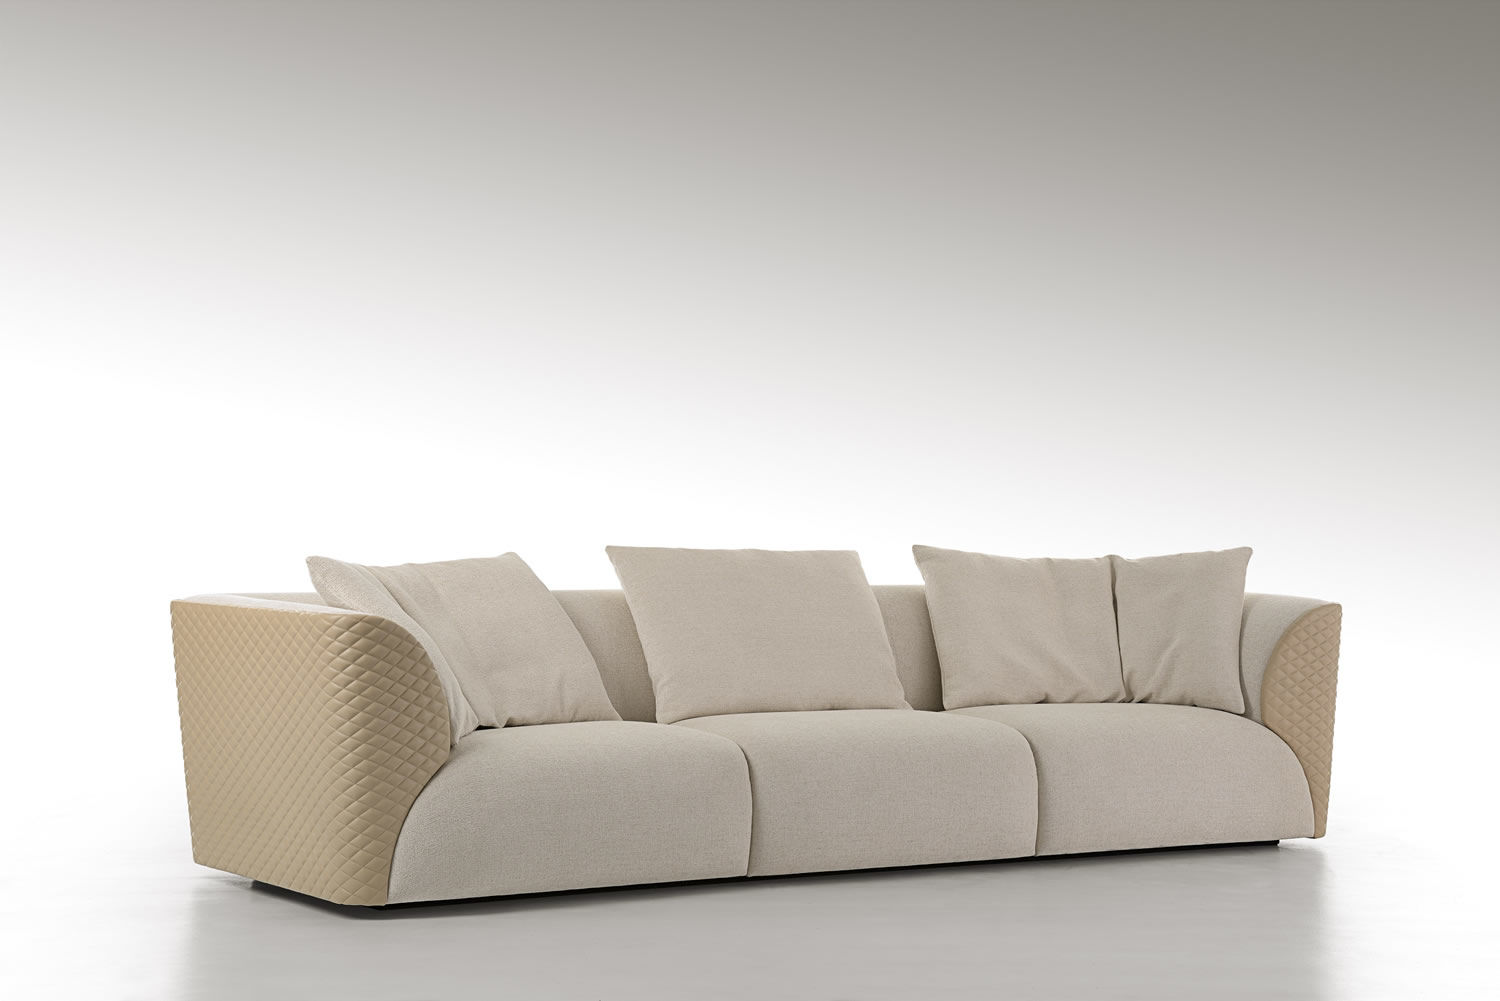 new leather sofa beds pattern-Contemporary Leather sofa Beds Pattern